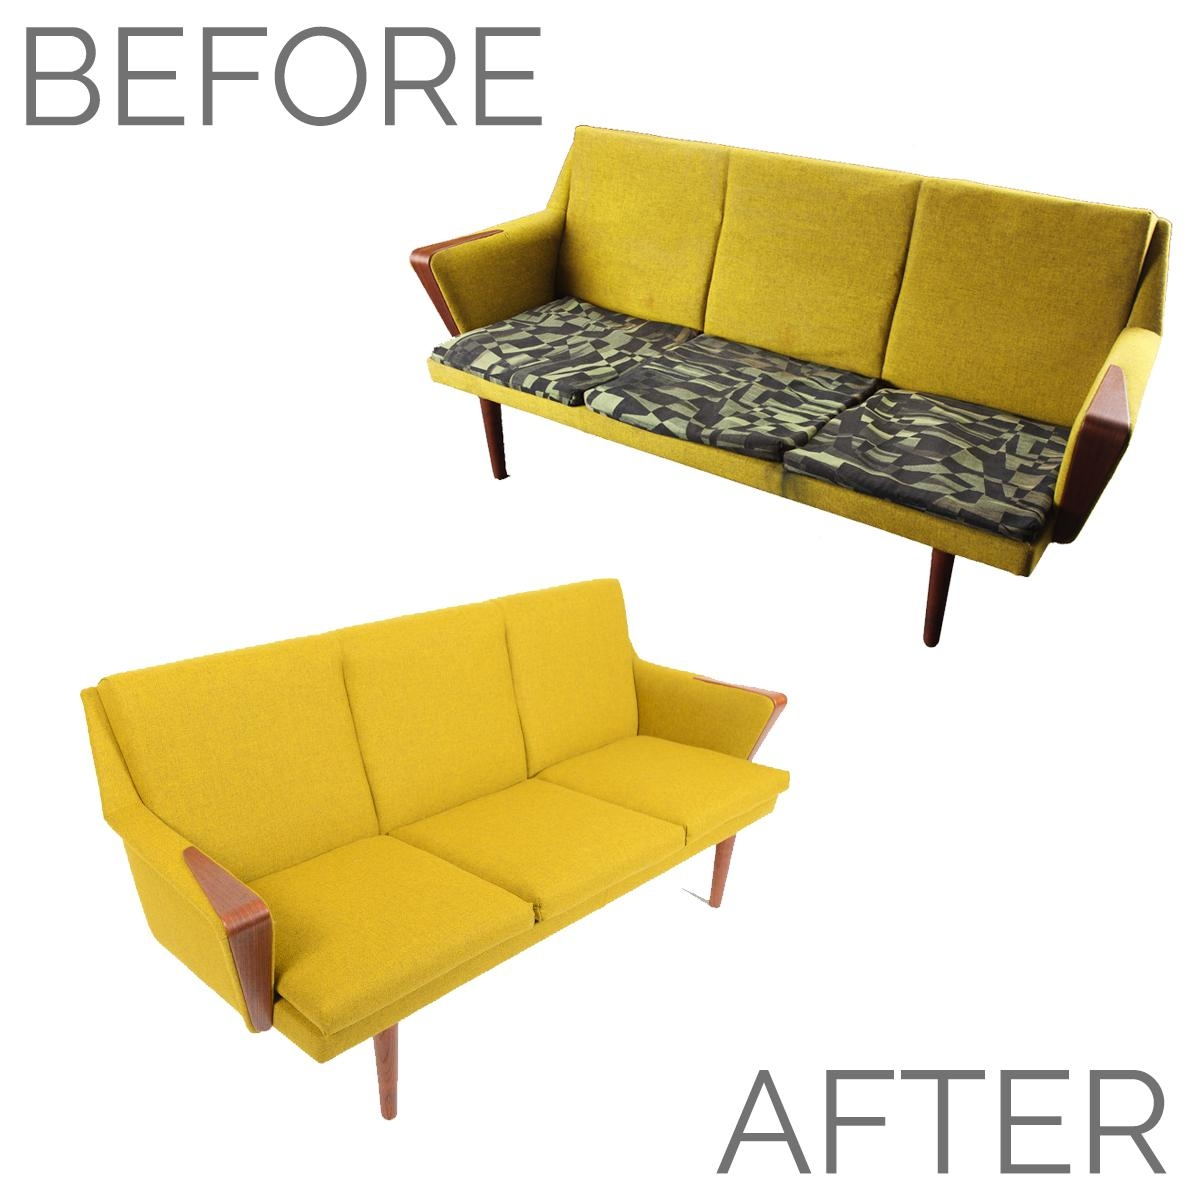 Before + After – Danish Modern Chartreuse Sofa • Mid Century Mobler With Regard To Chartreuse Sofas (Image 3 of 20)